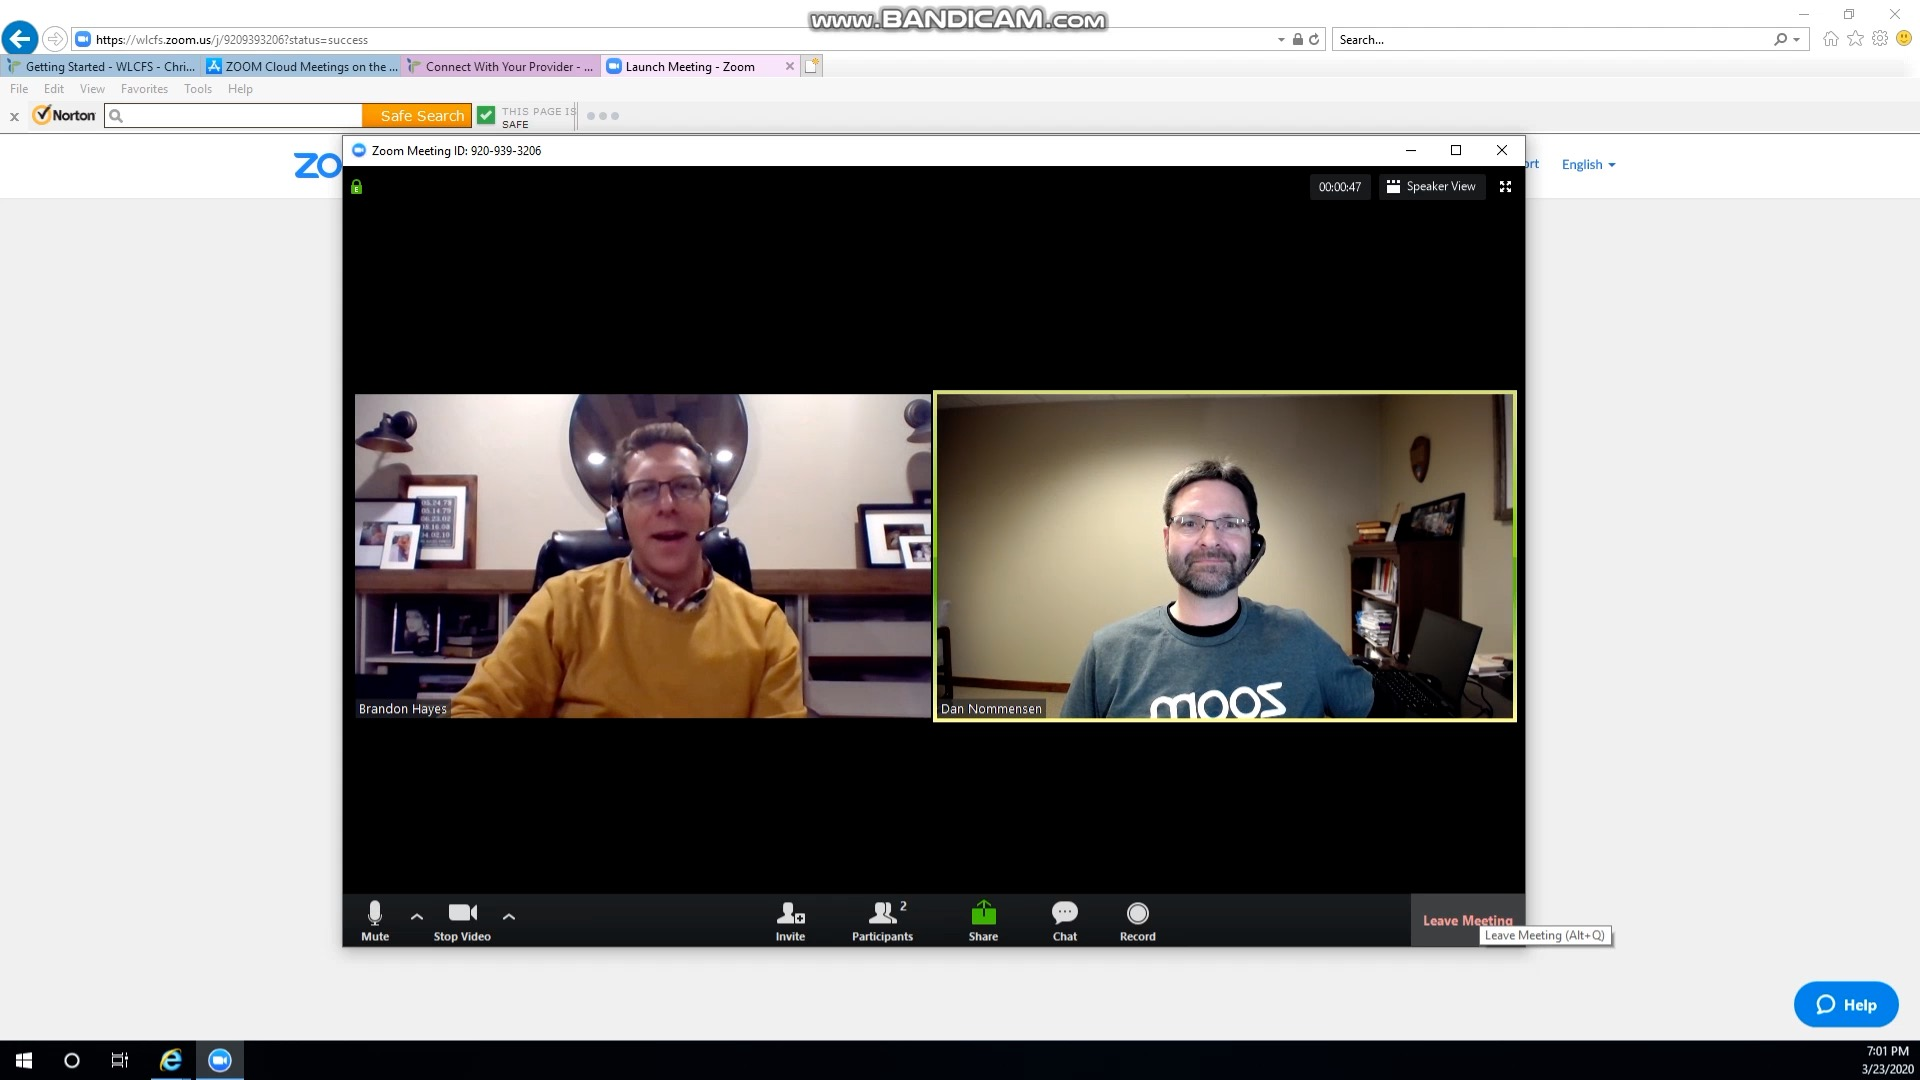 Picture of connecting with counselor through Zoom